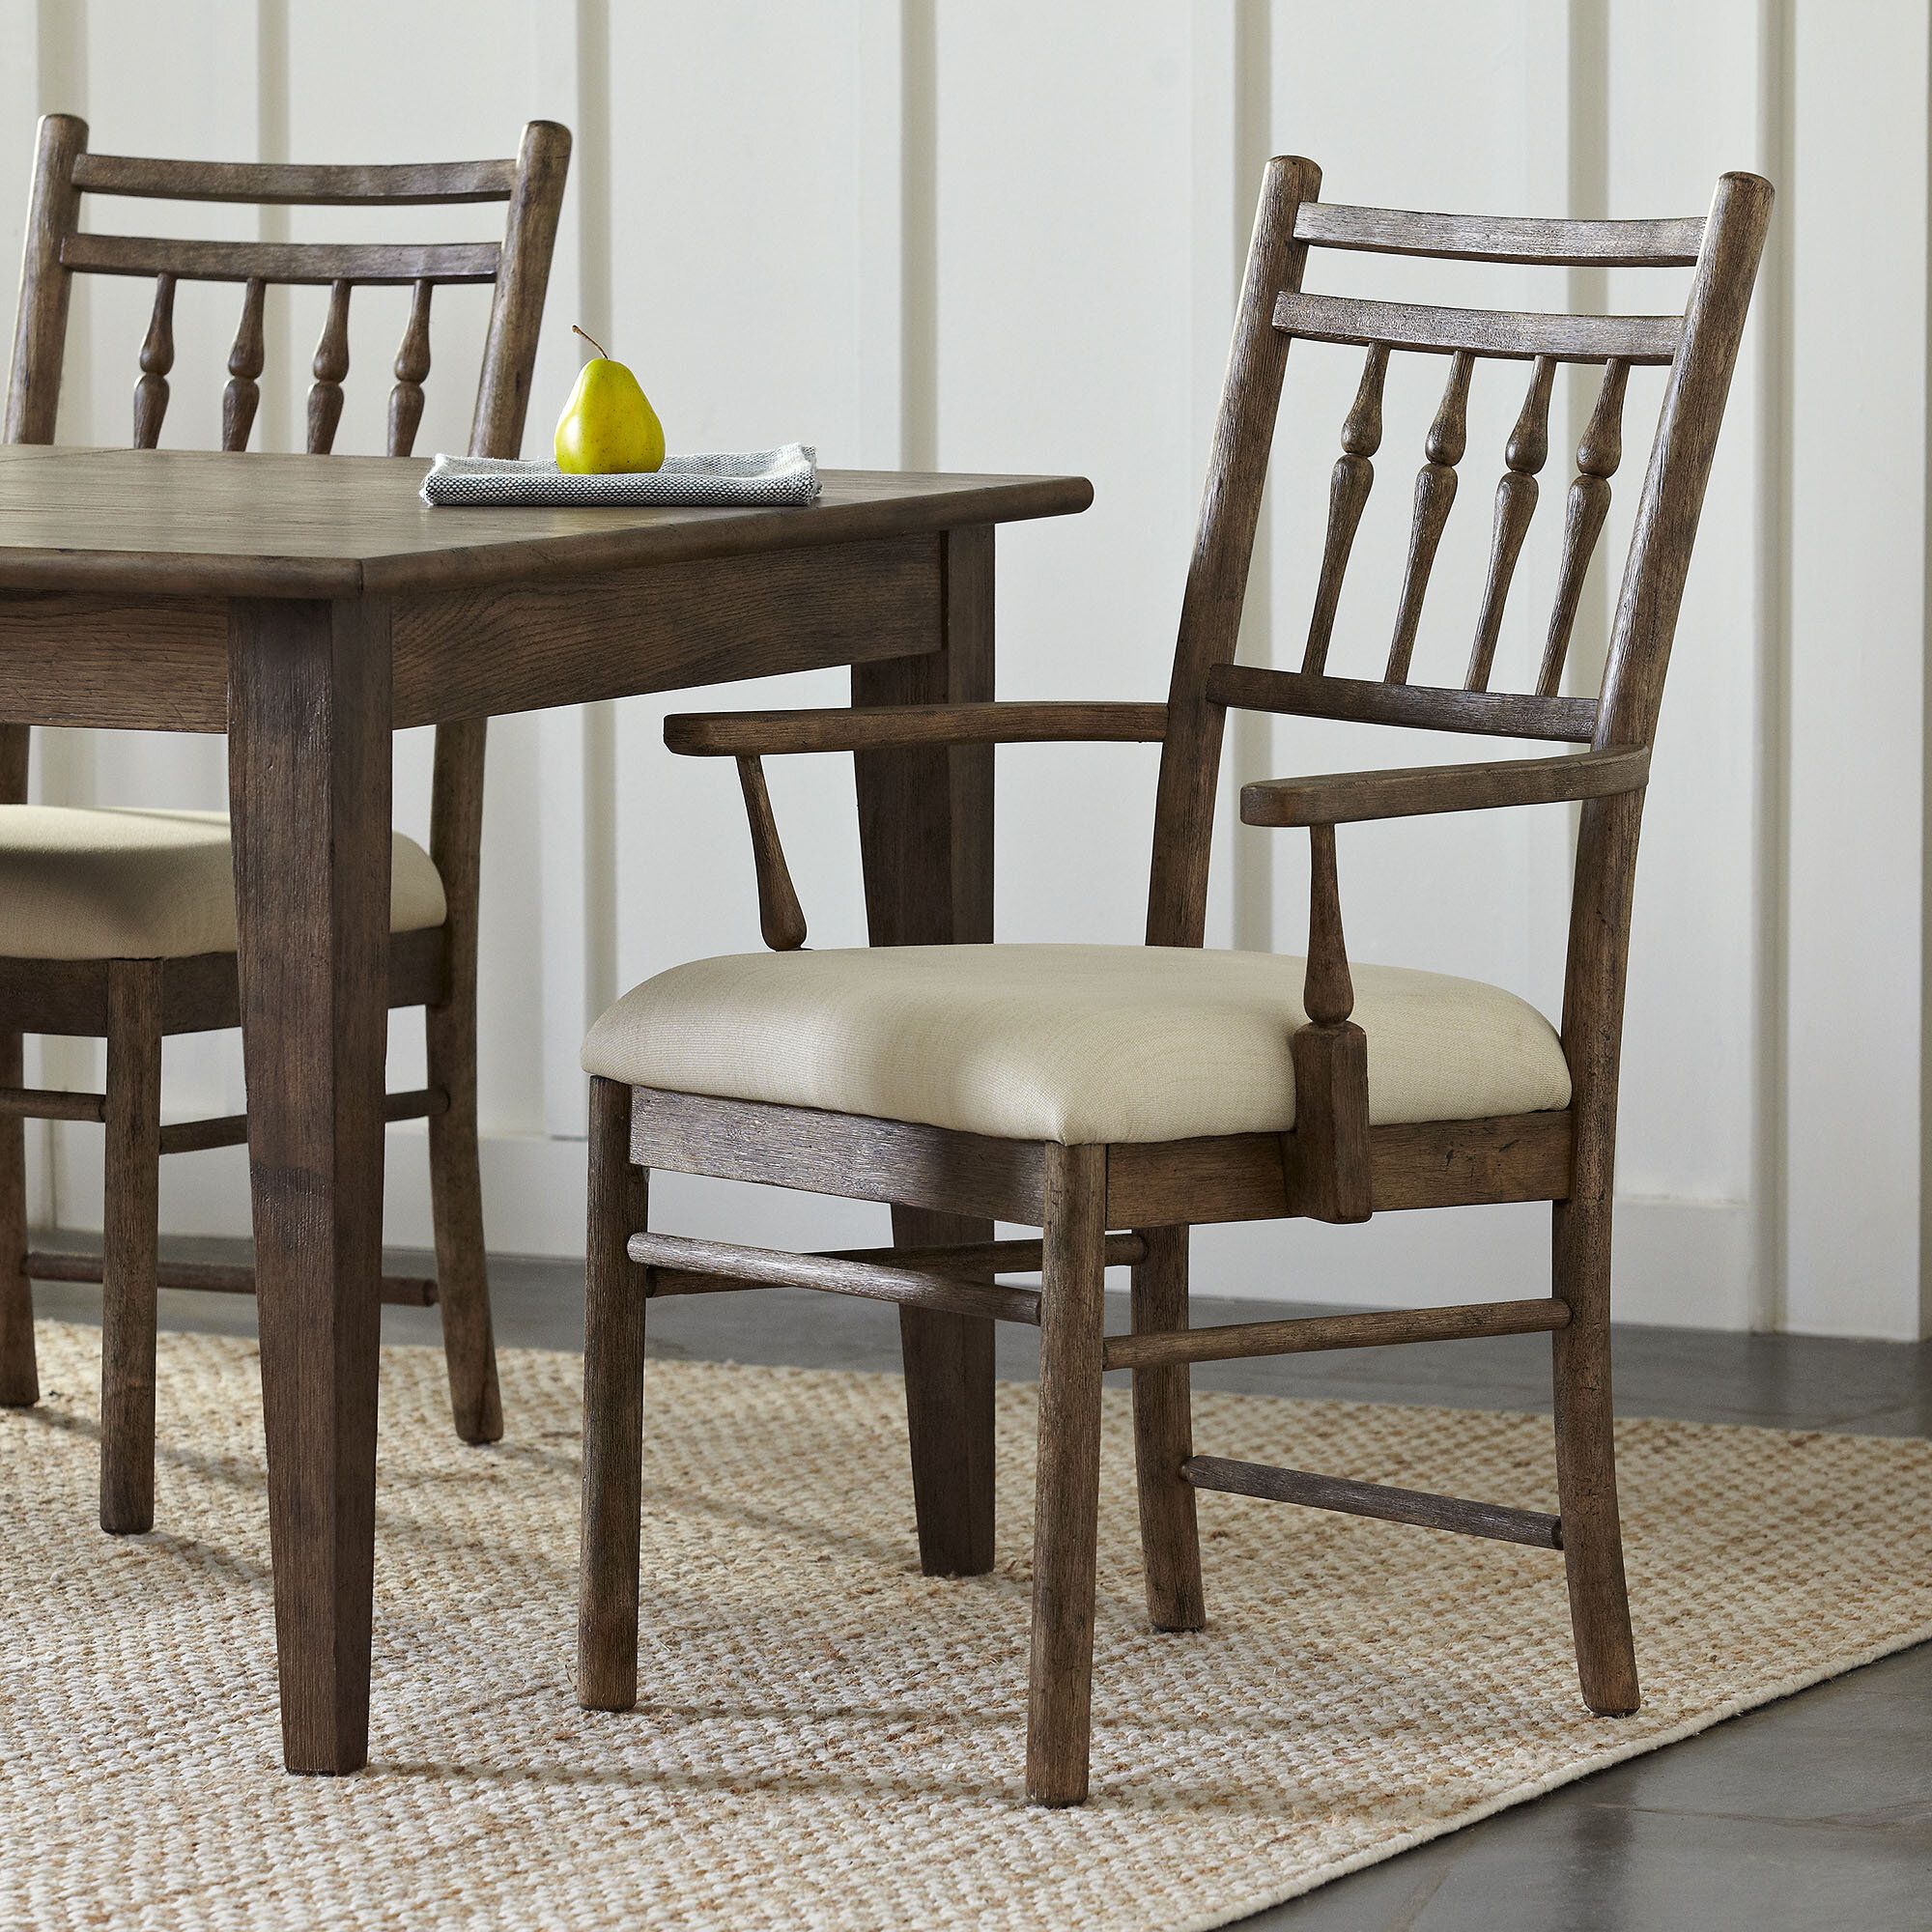 Birch LaneTM Riverbank Upholstered Dining Room Arm Chair